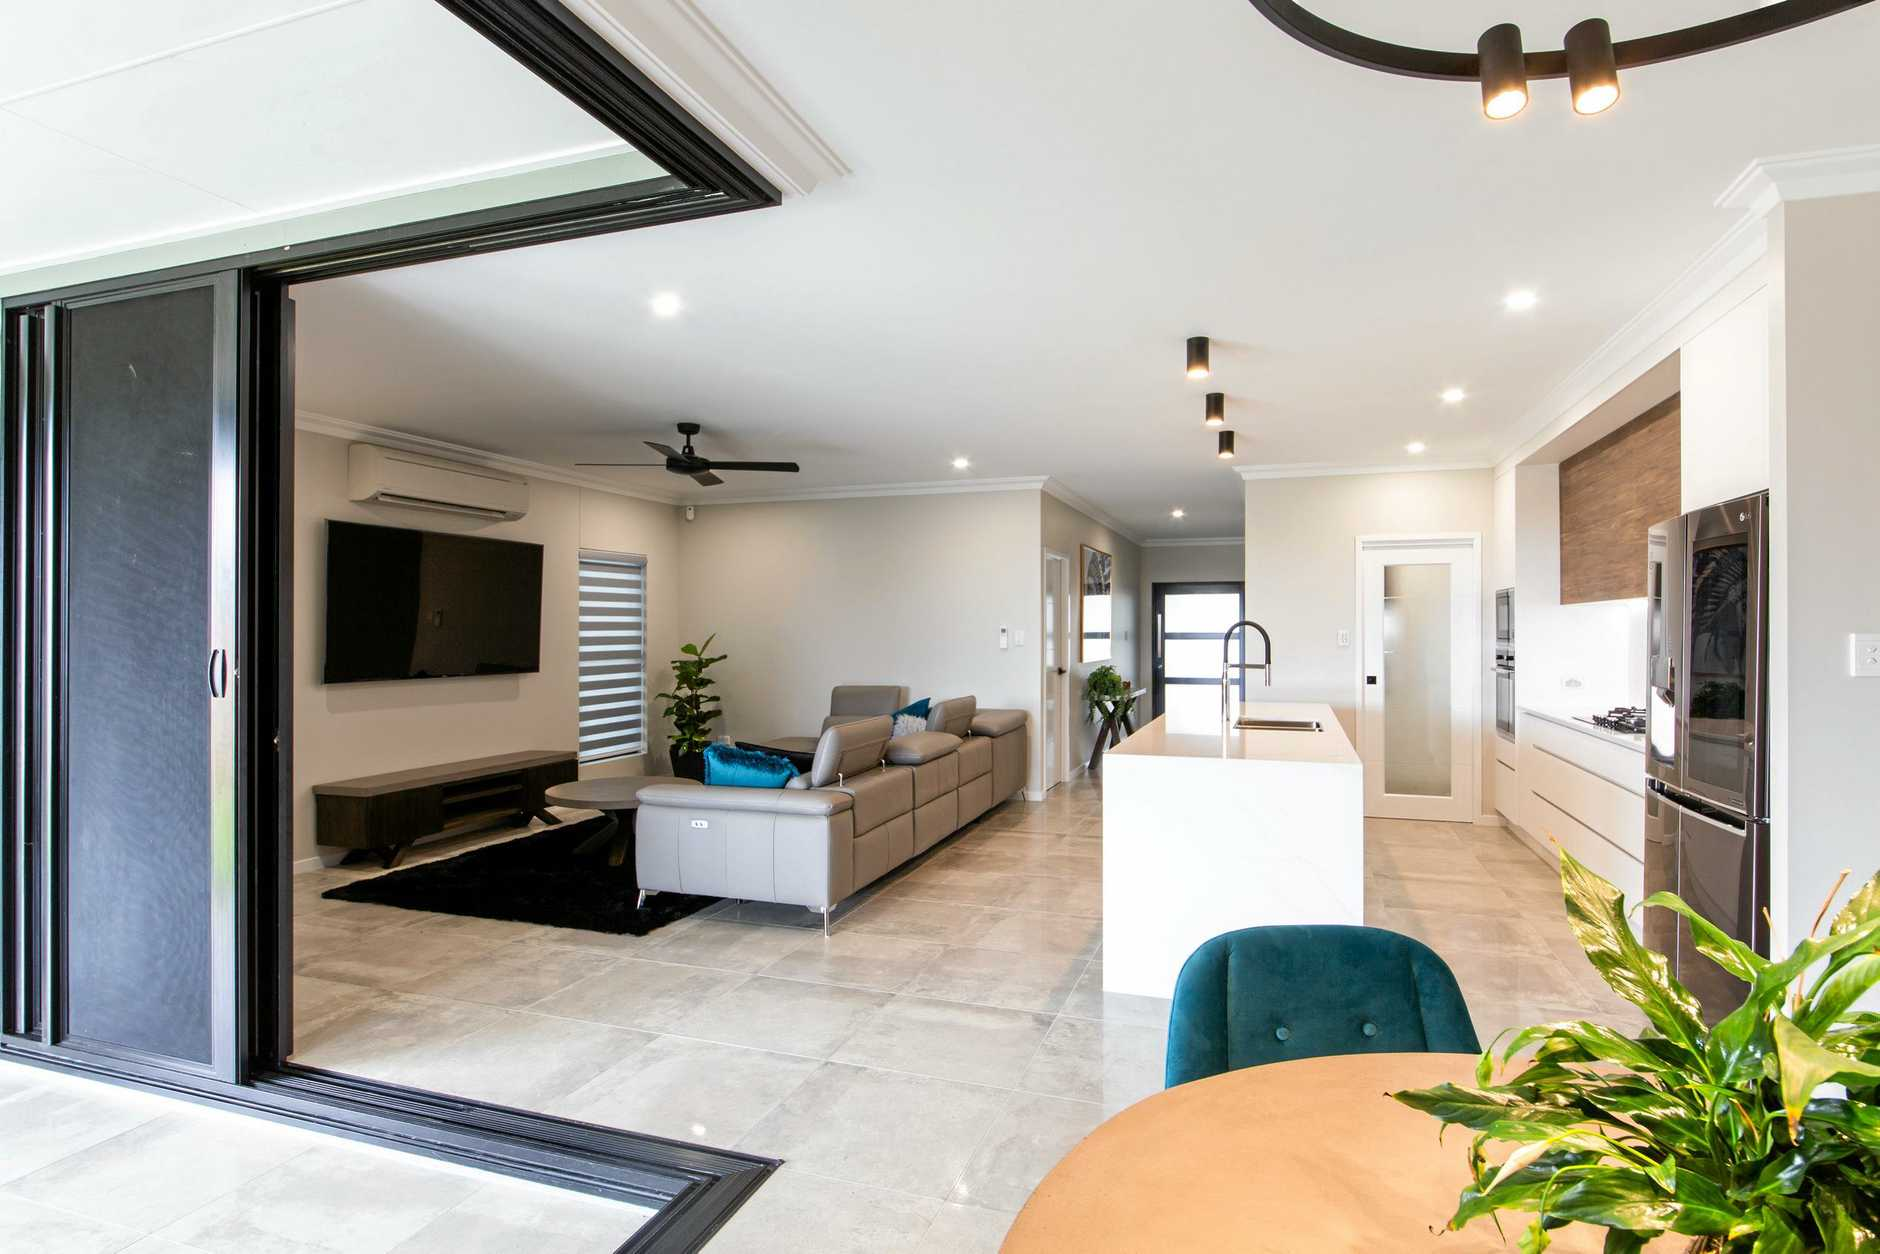 Fergus Builder's winning entry, Ella, won the display home $315,000 - $450,0000 catagory at the Master Builders Housing & Construction Awards 2019.